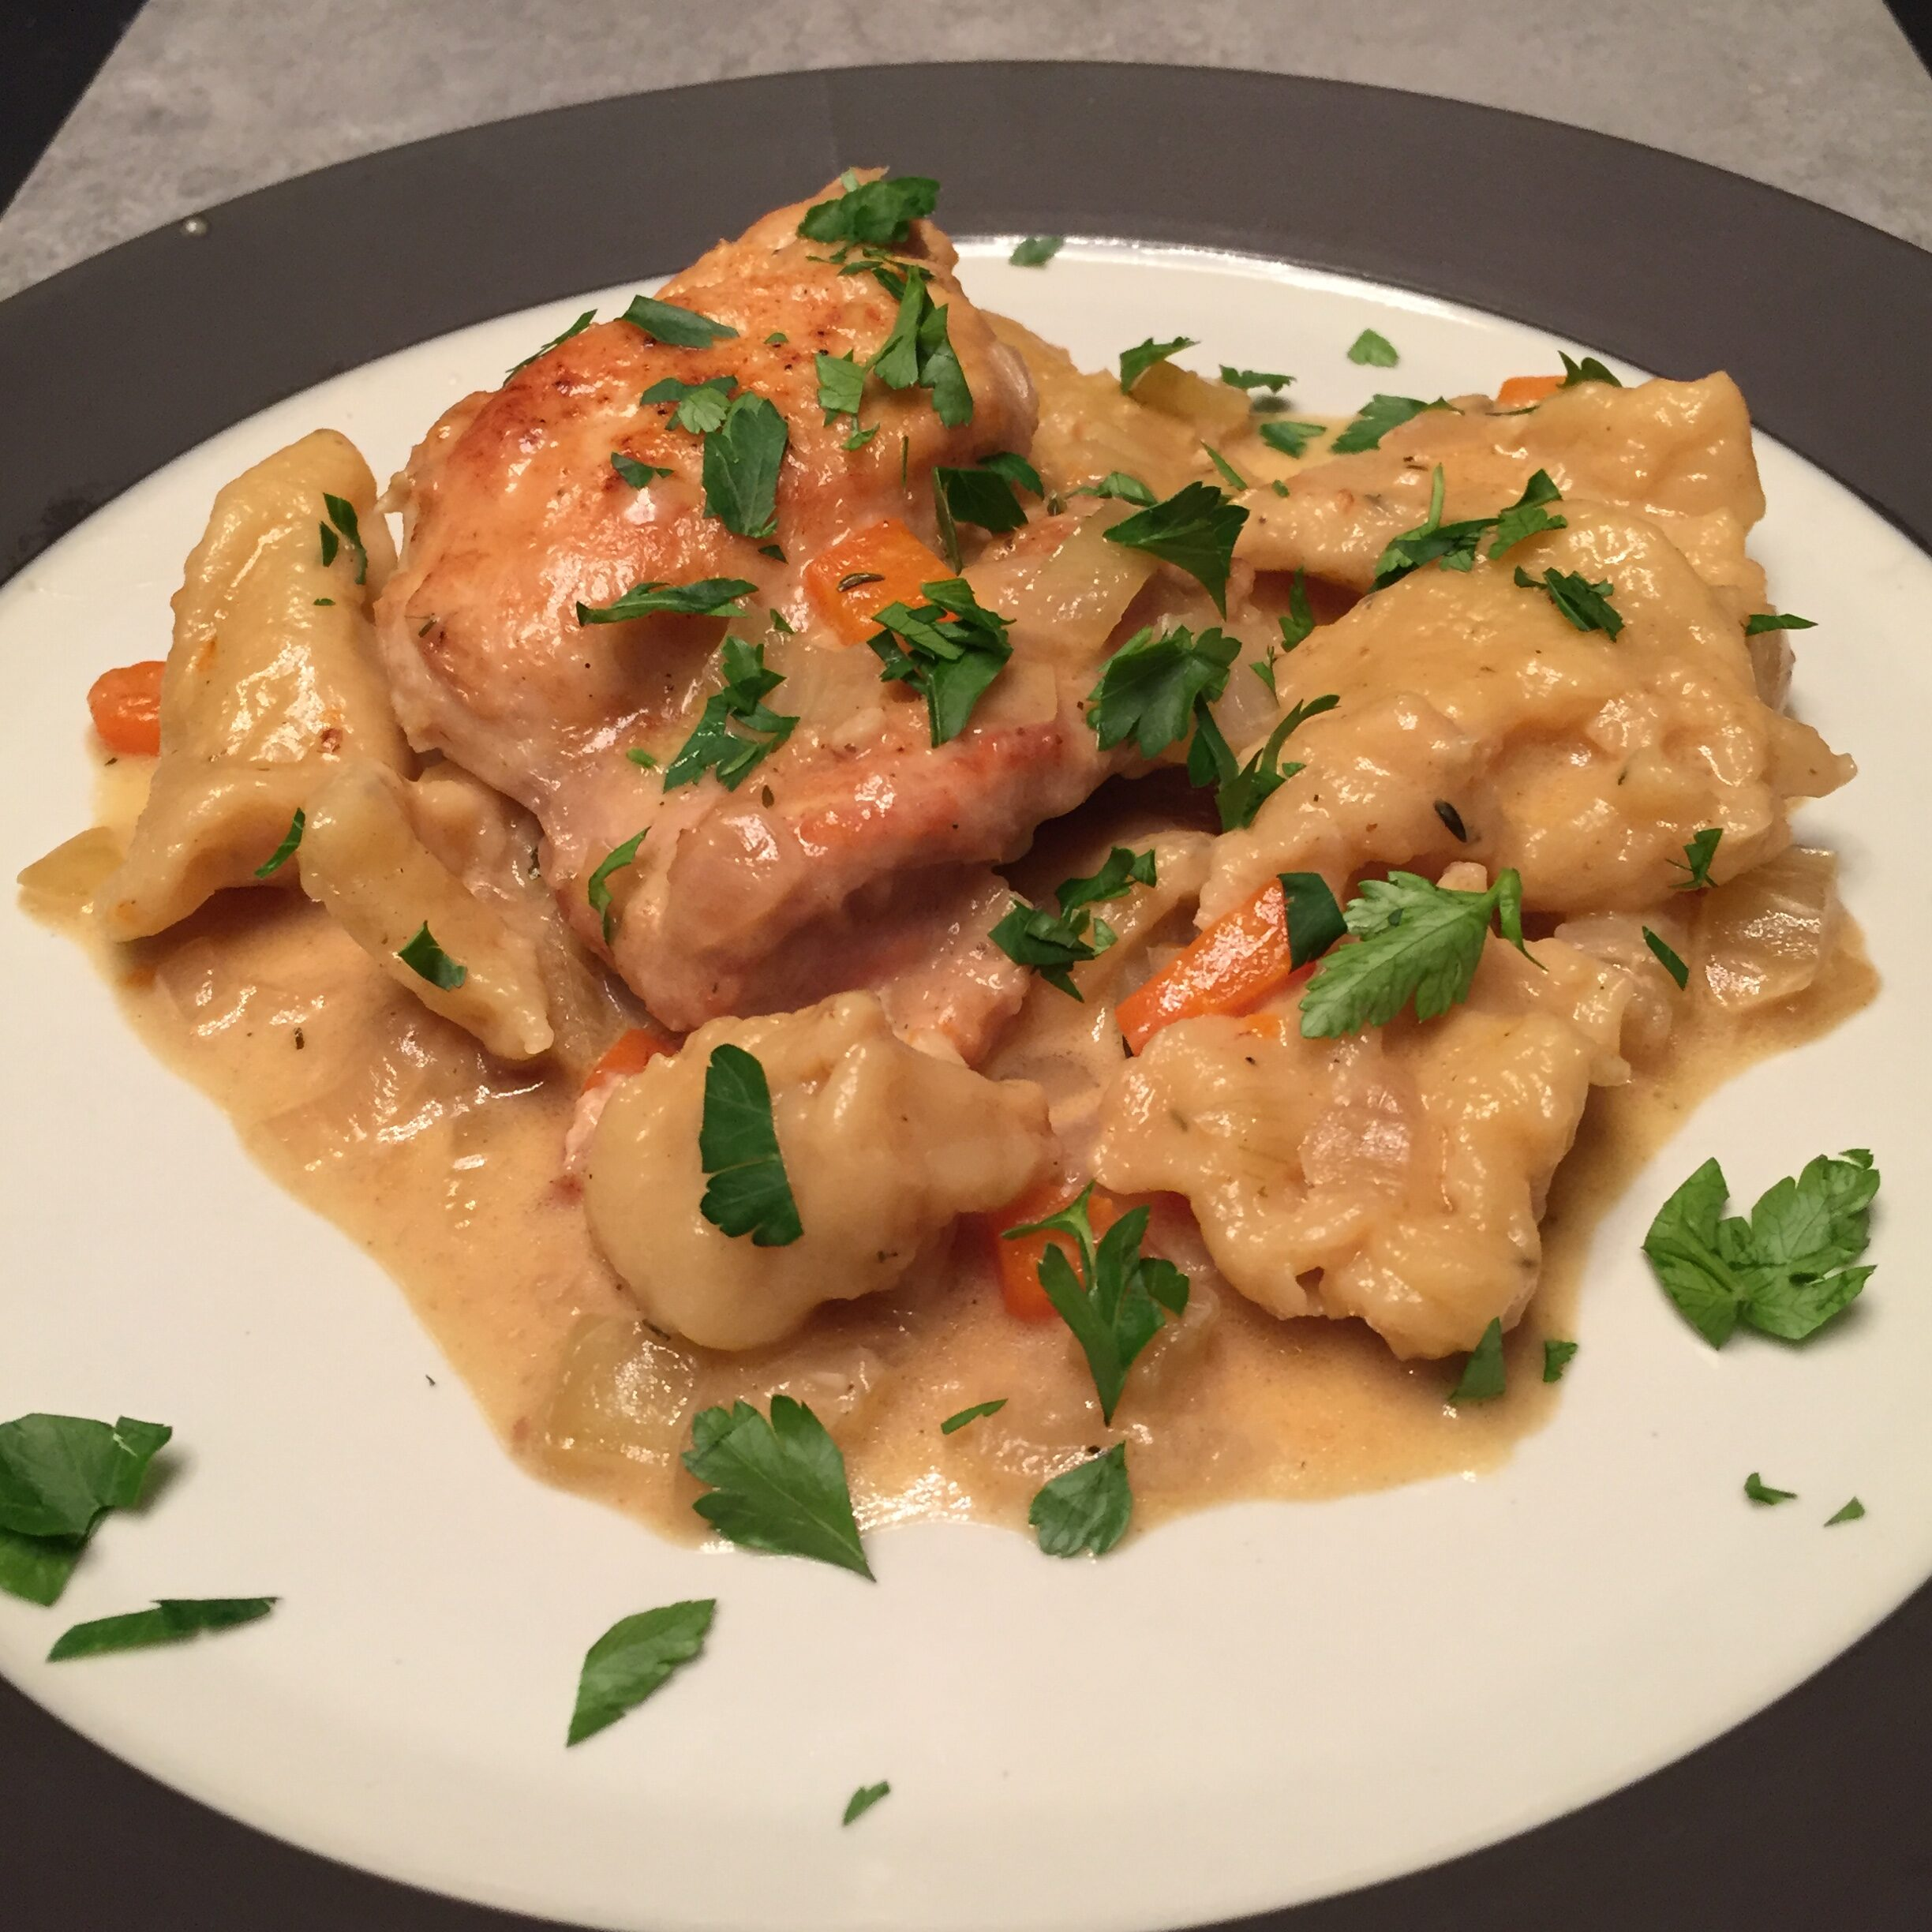 Chicken and dumplings? Chicken and pastry?